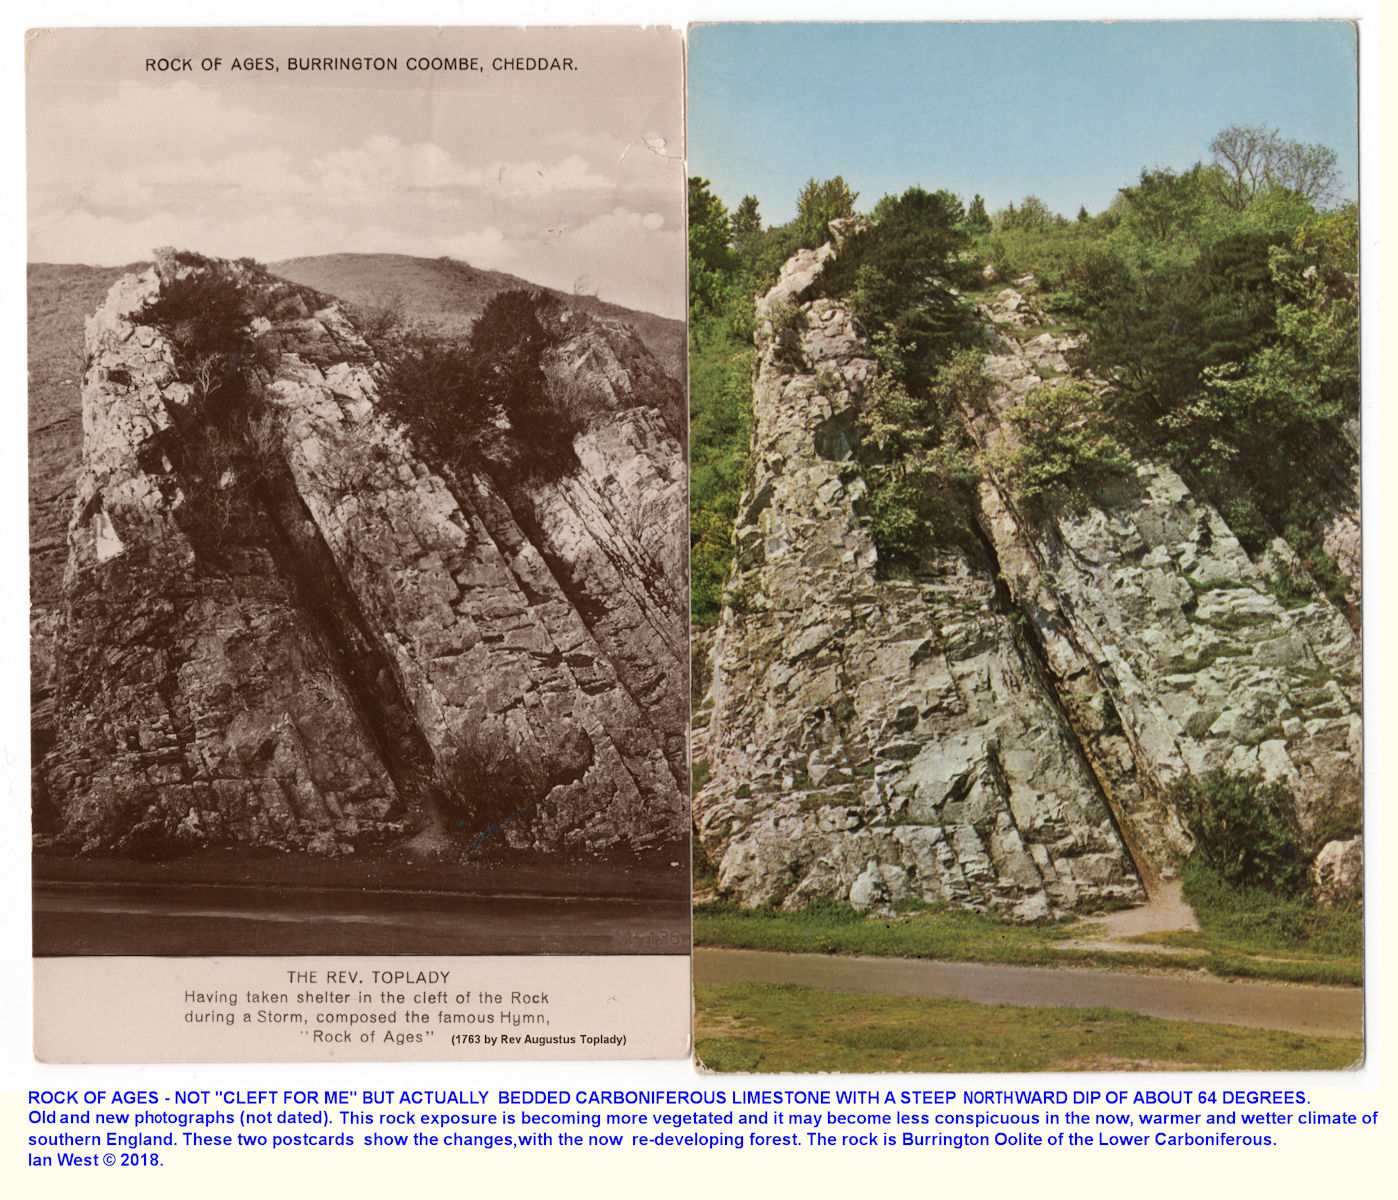 The Rock of Ages in Burrington Combe in old and new photographs, actually a stream-cut exposure of north-dipping, Burrington Oolite of the Lower Carboniferous Limestone